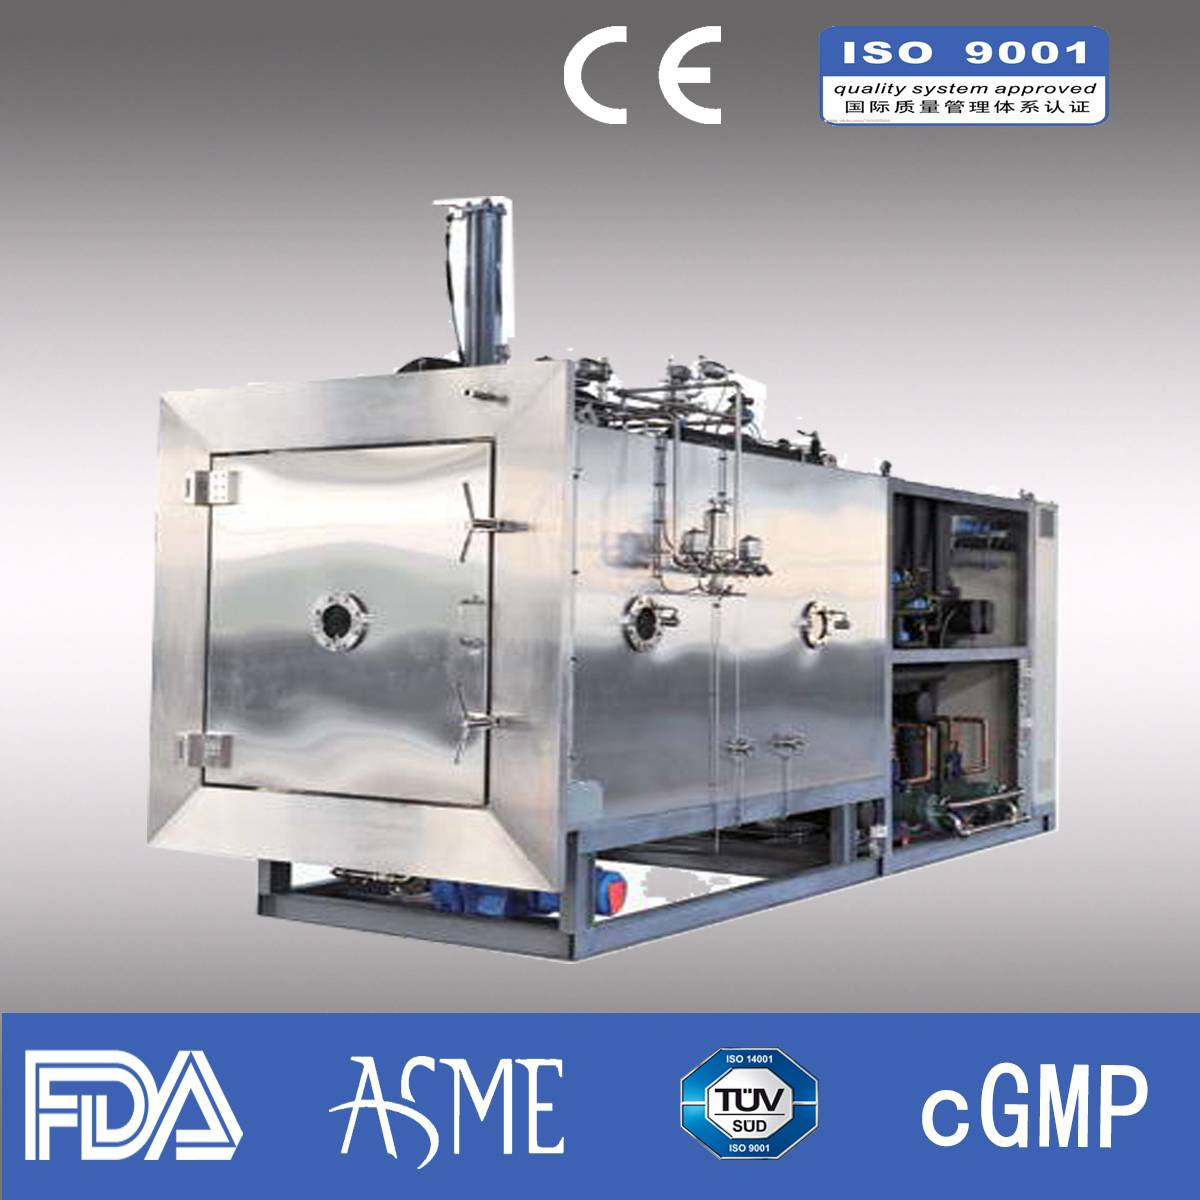 Freeze dryer/ Pharmaceutical freeze dryer/ industrial freeze dryer/Capacity 260kg